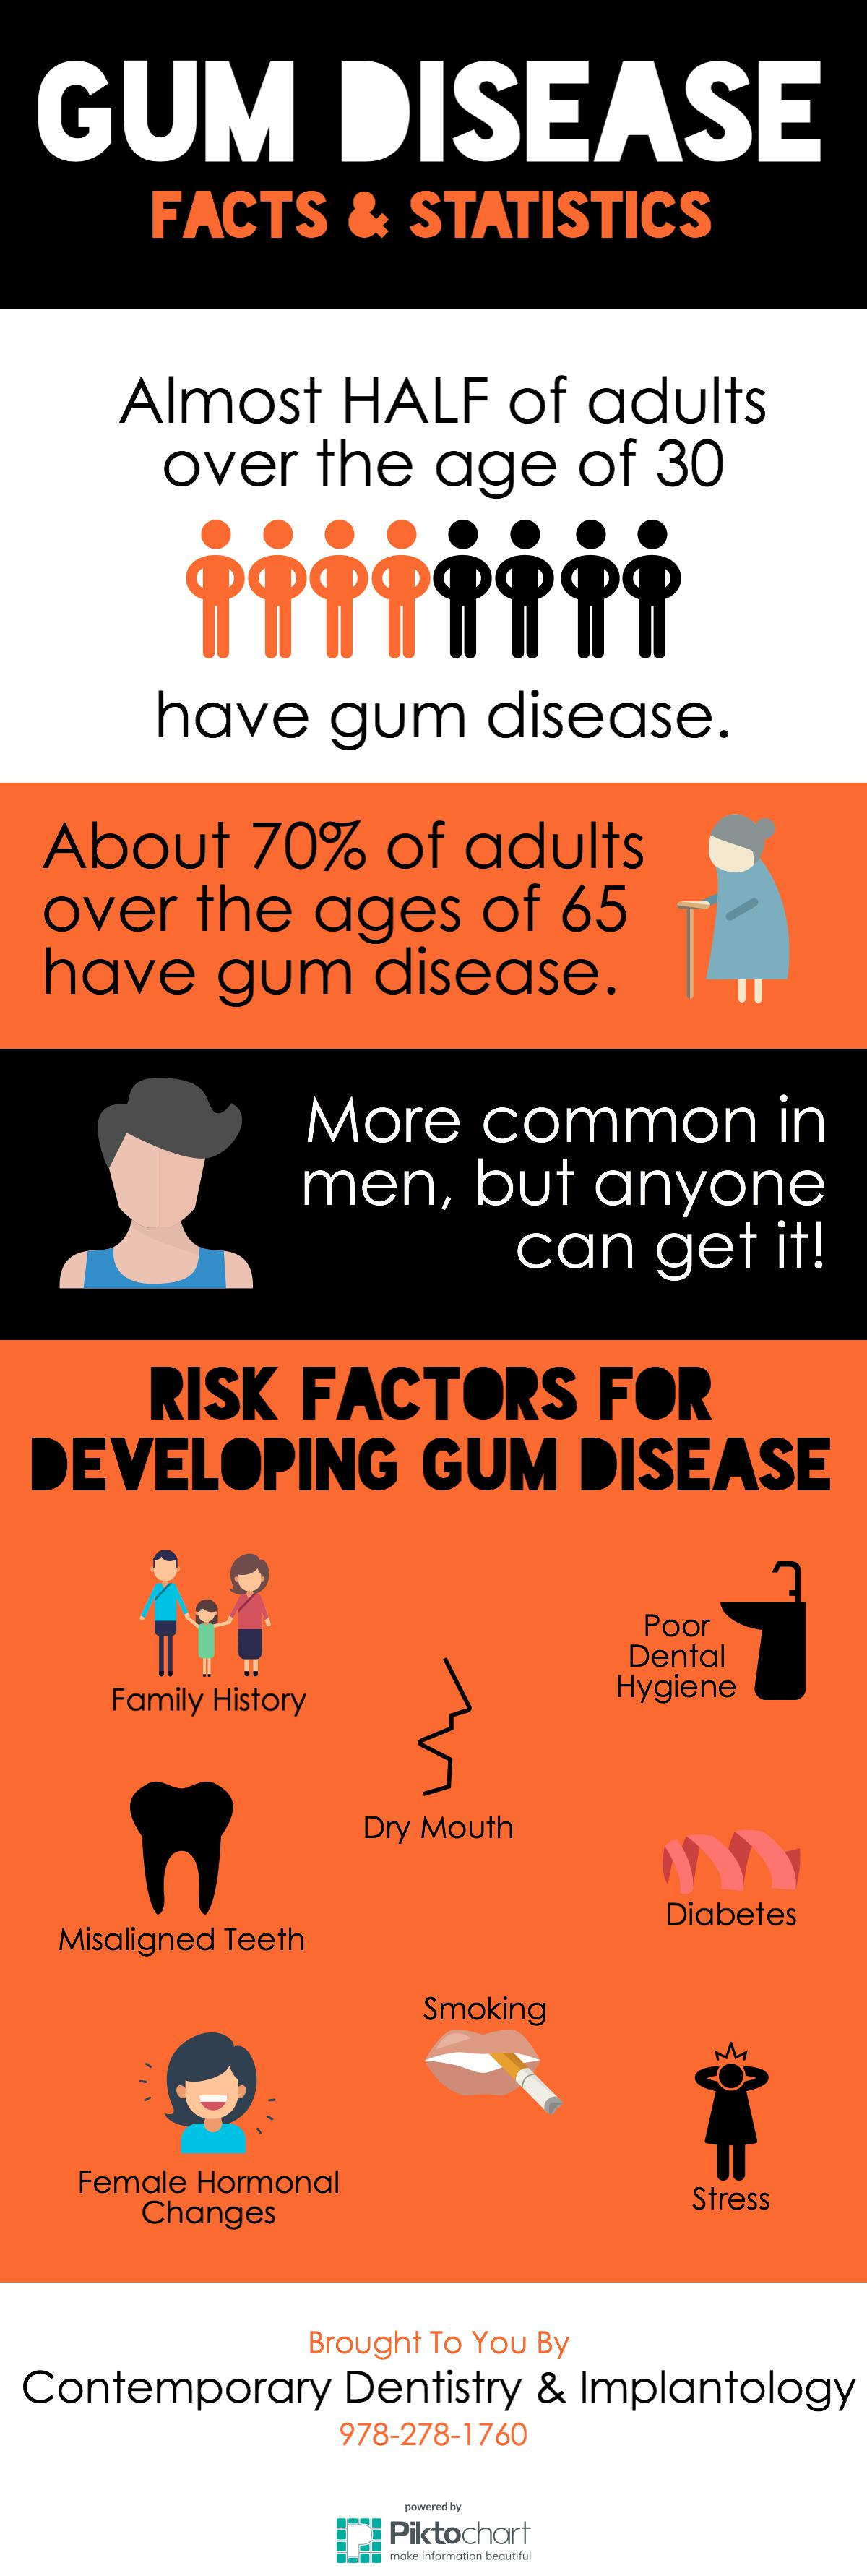 Gum Disease Facts & Statistics [INFOGRAPHIC] - Contemporary Dentistry & Implantology   Peabody, MA